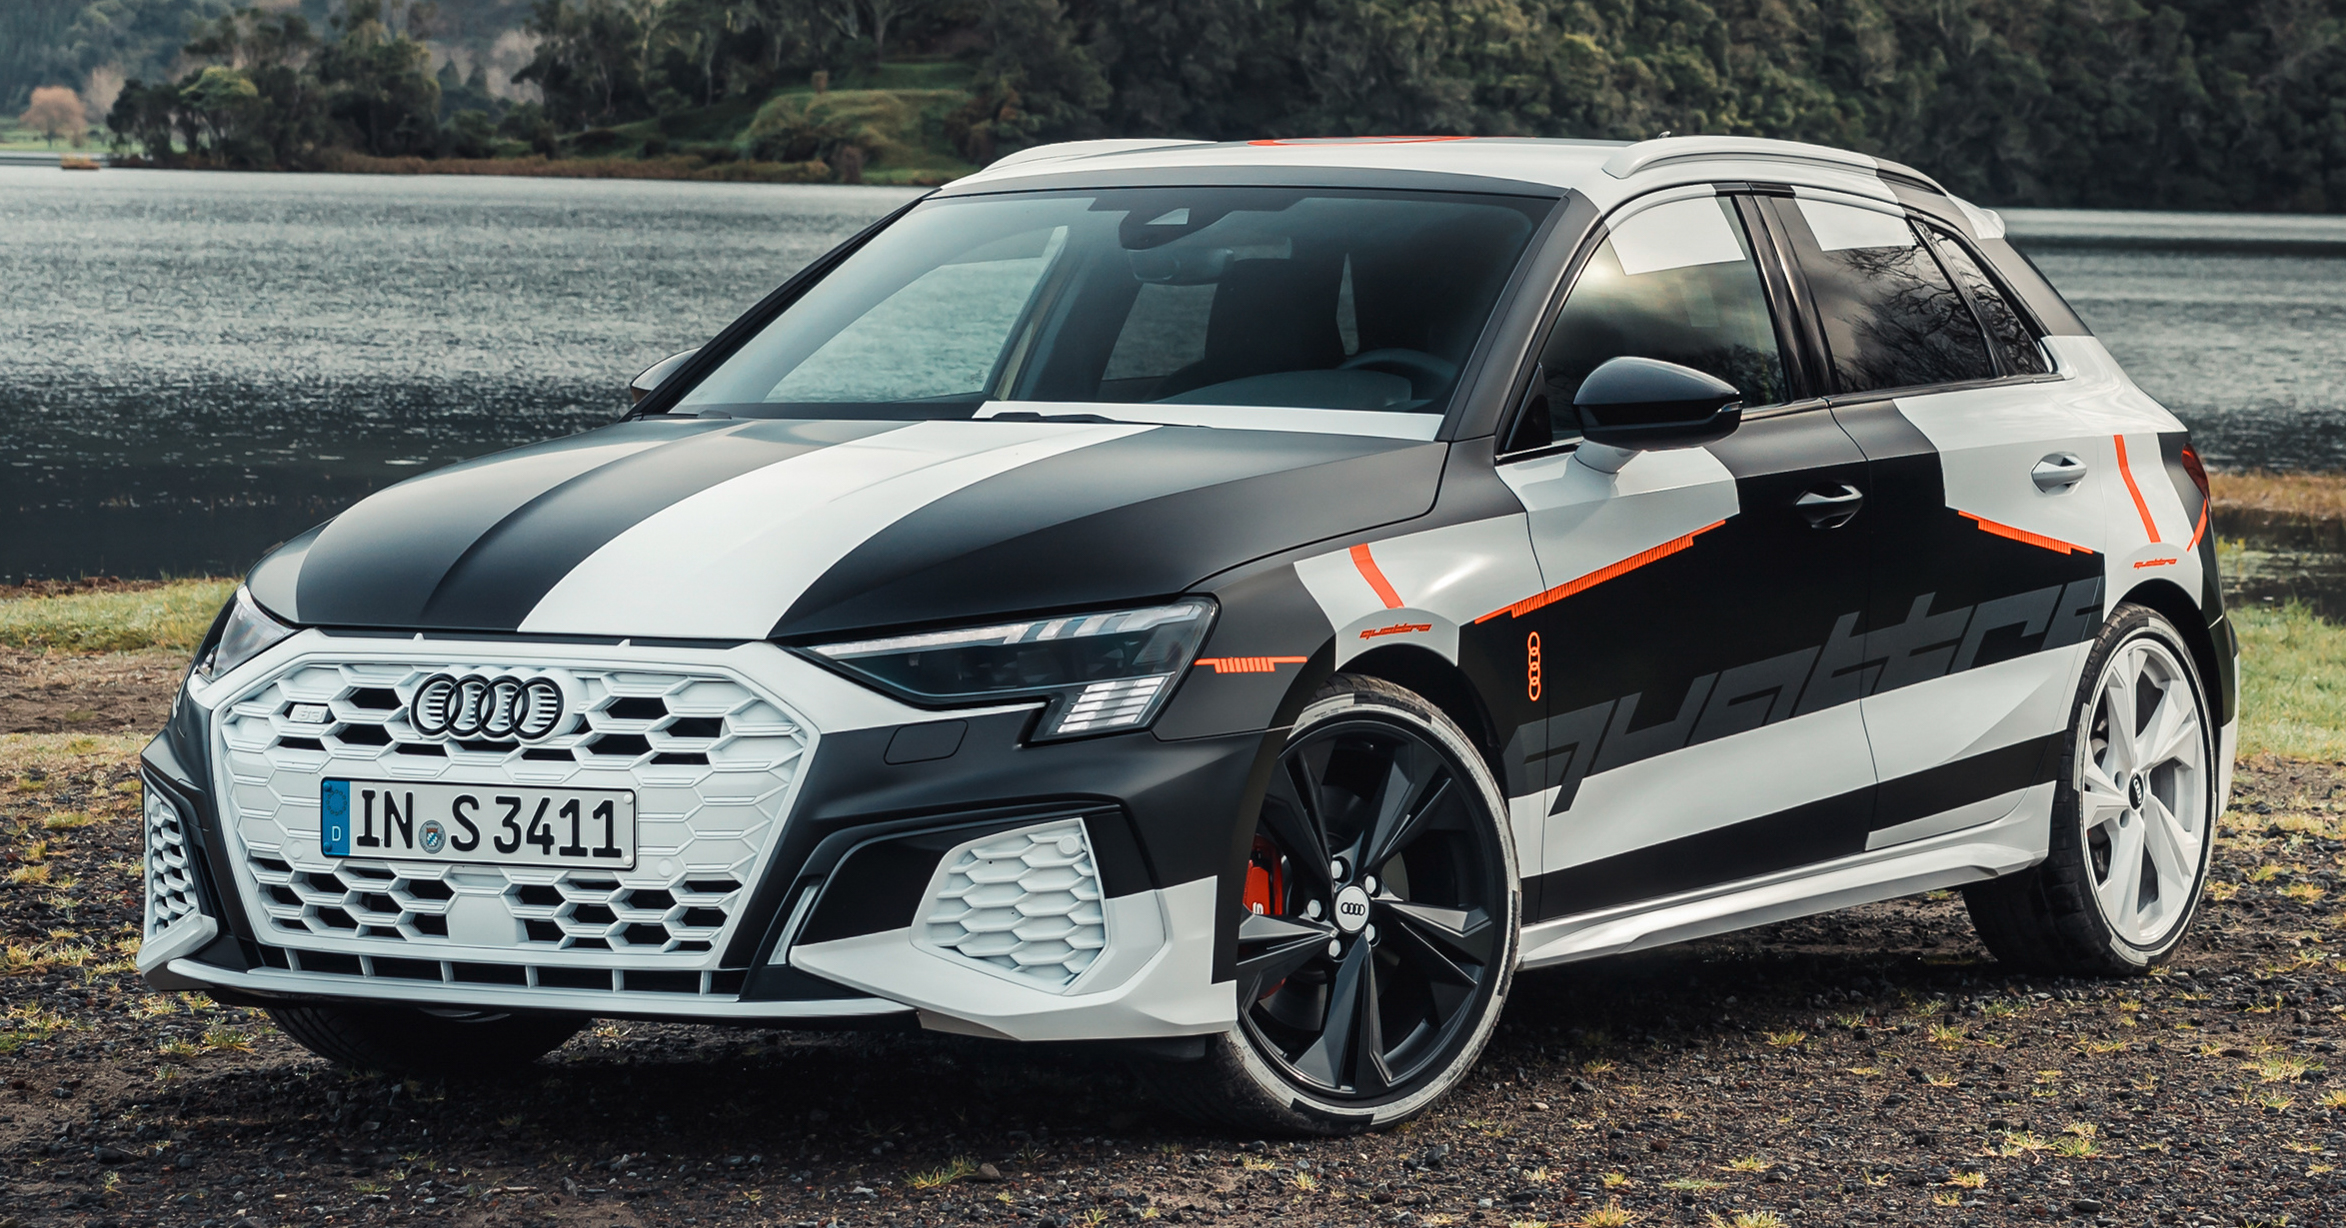 2020 Audi A3 Fourth Gen Model To Debut In Geneva Features Fully Variable Quattro Awd Adaptive Dampers Paultan Org